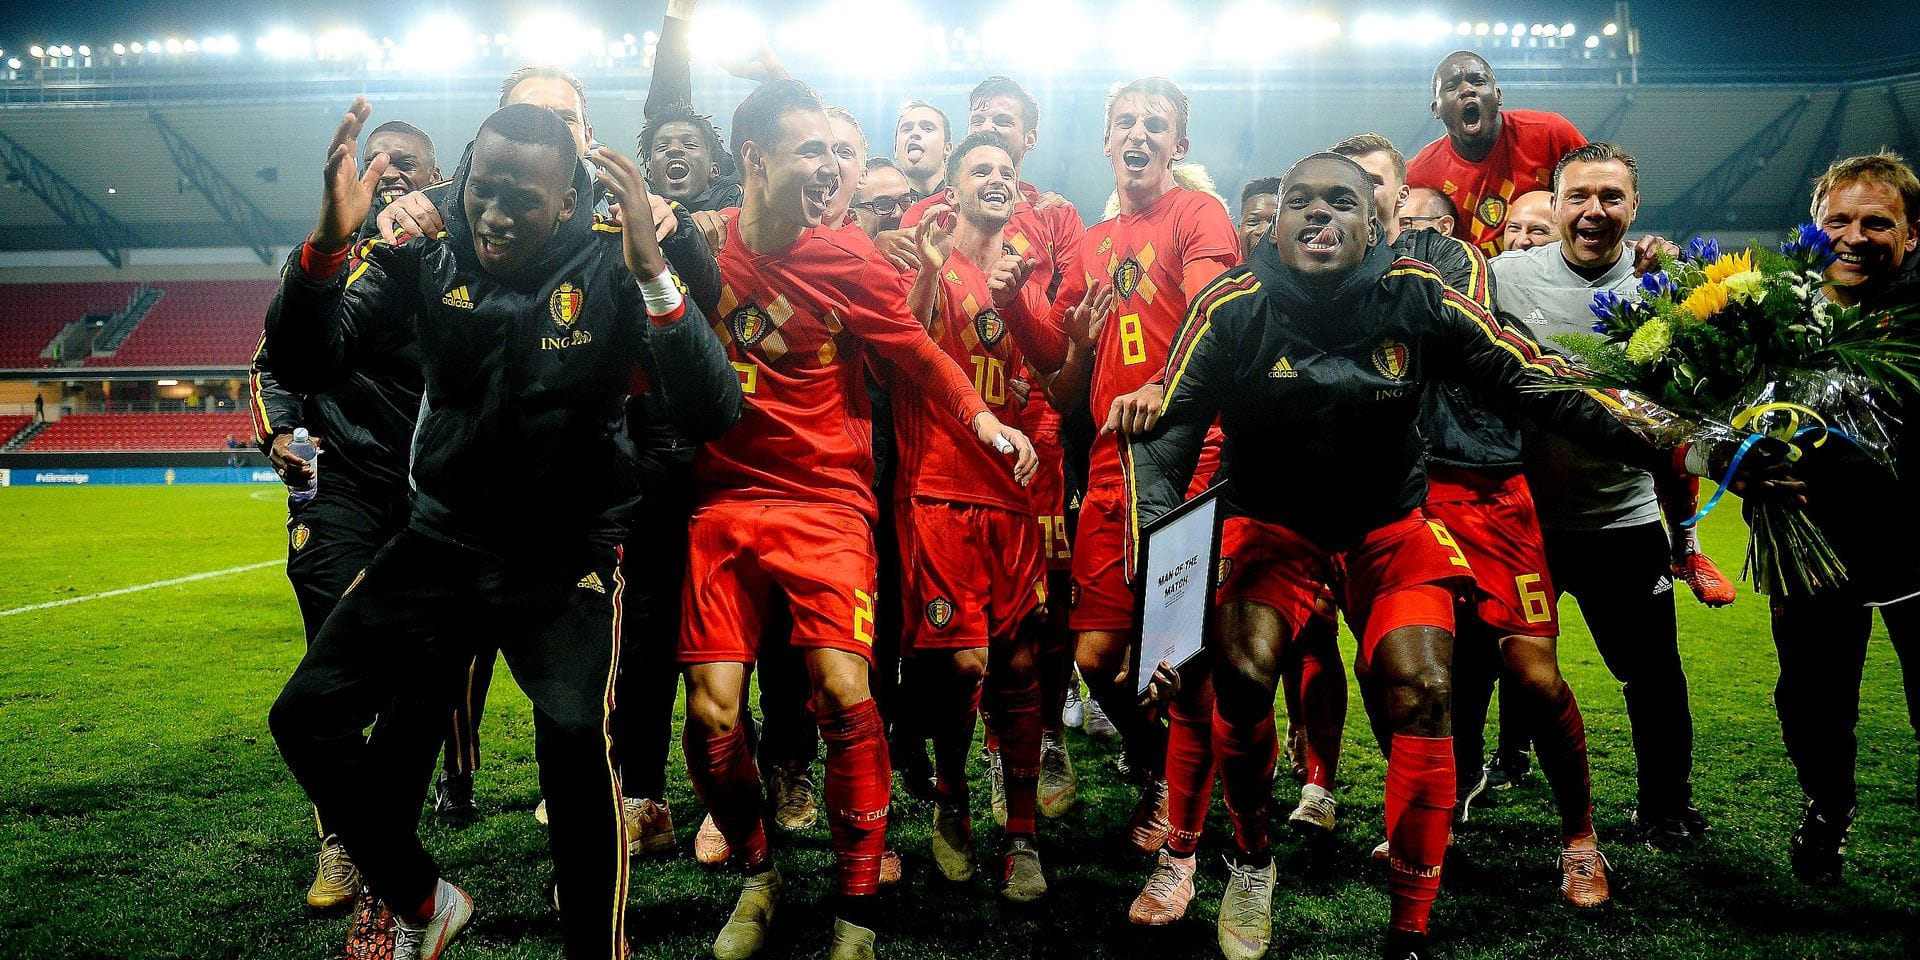 Belgium´s team celebrates after winning the UEFA U21 qualification Group 6 football match between Sweden and Belgium in Kalmar, Sweden, on October 16, 2018. (Photo by Patric SODERSTROM / TT News Agency / AFP) / Sweden OUT